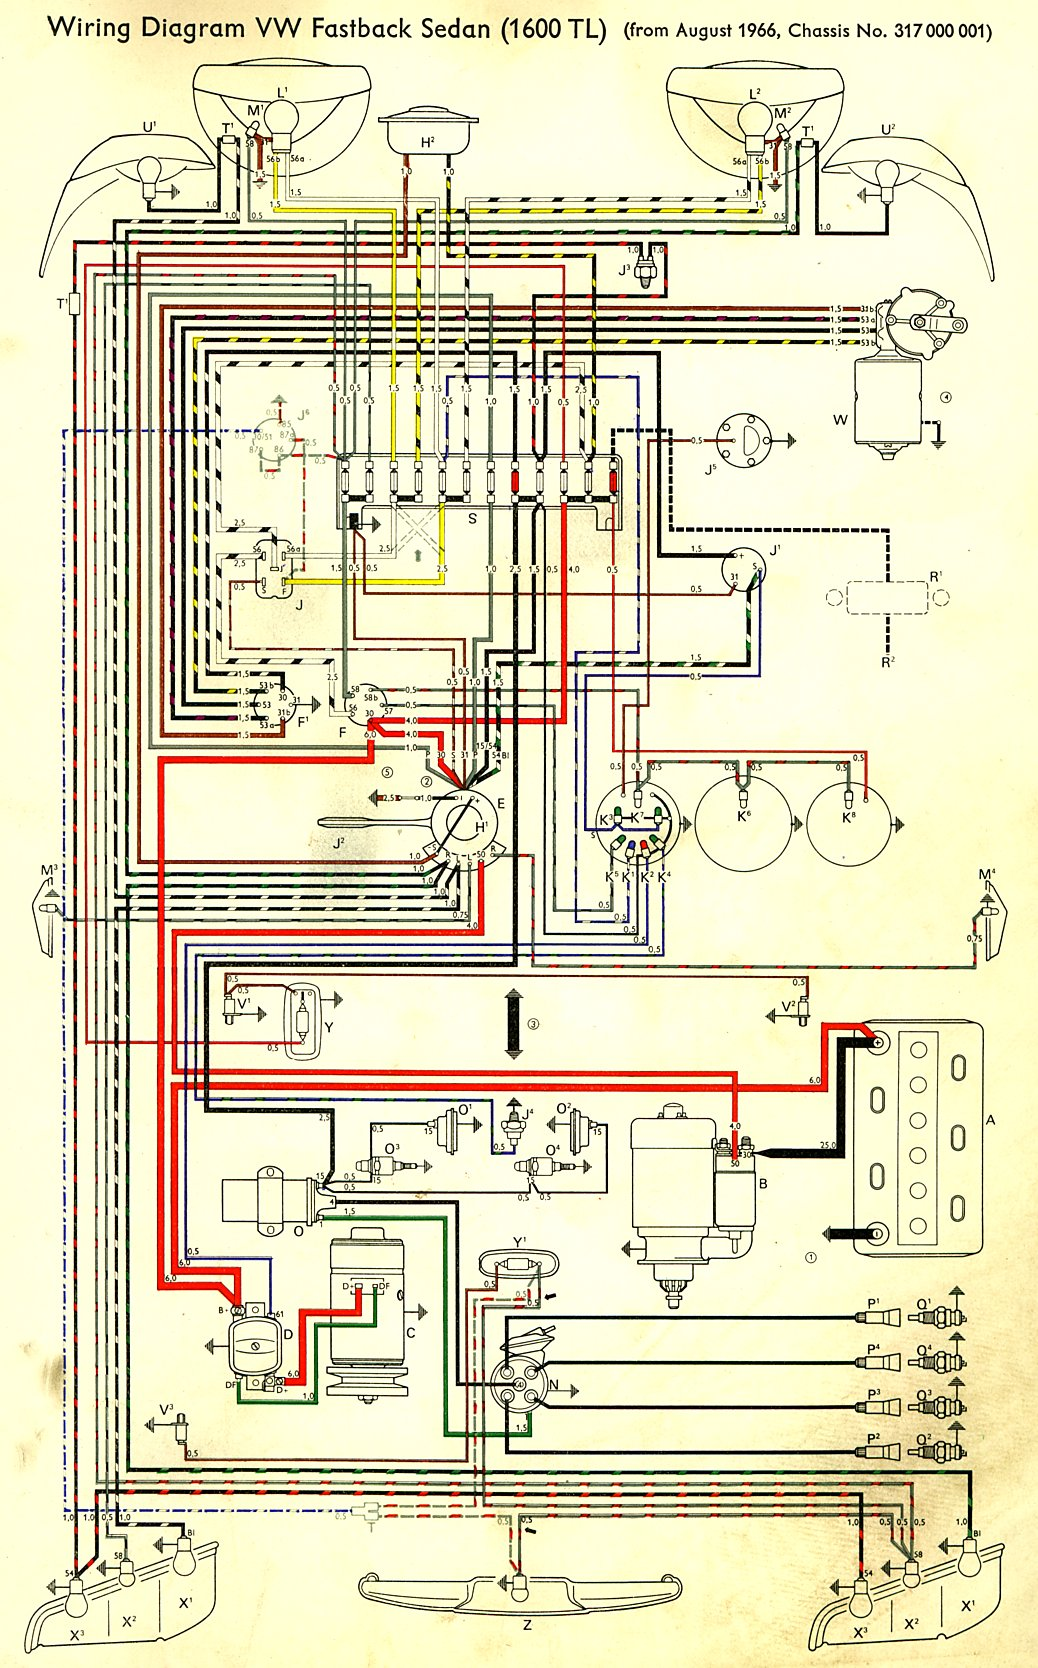 regulator wiring diagram as well alternator voltage regulator wiring